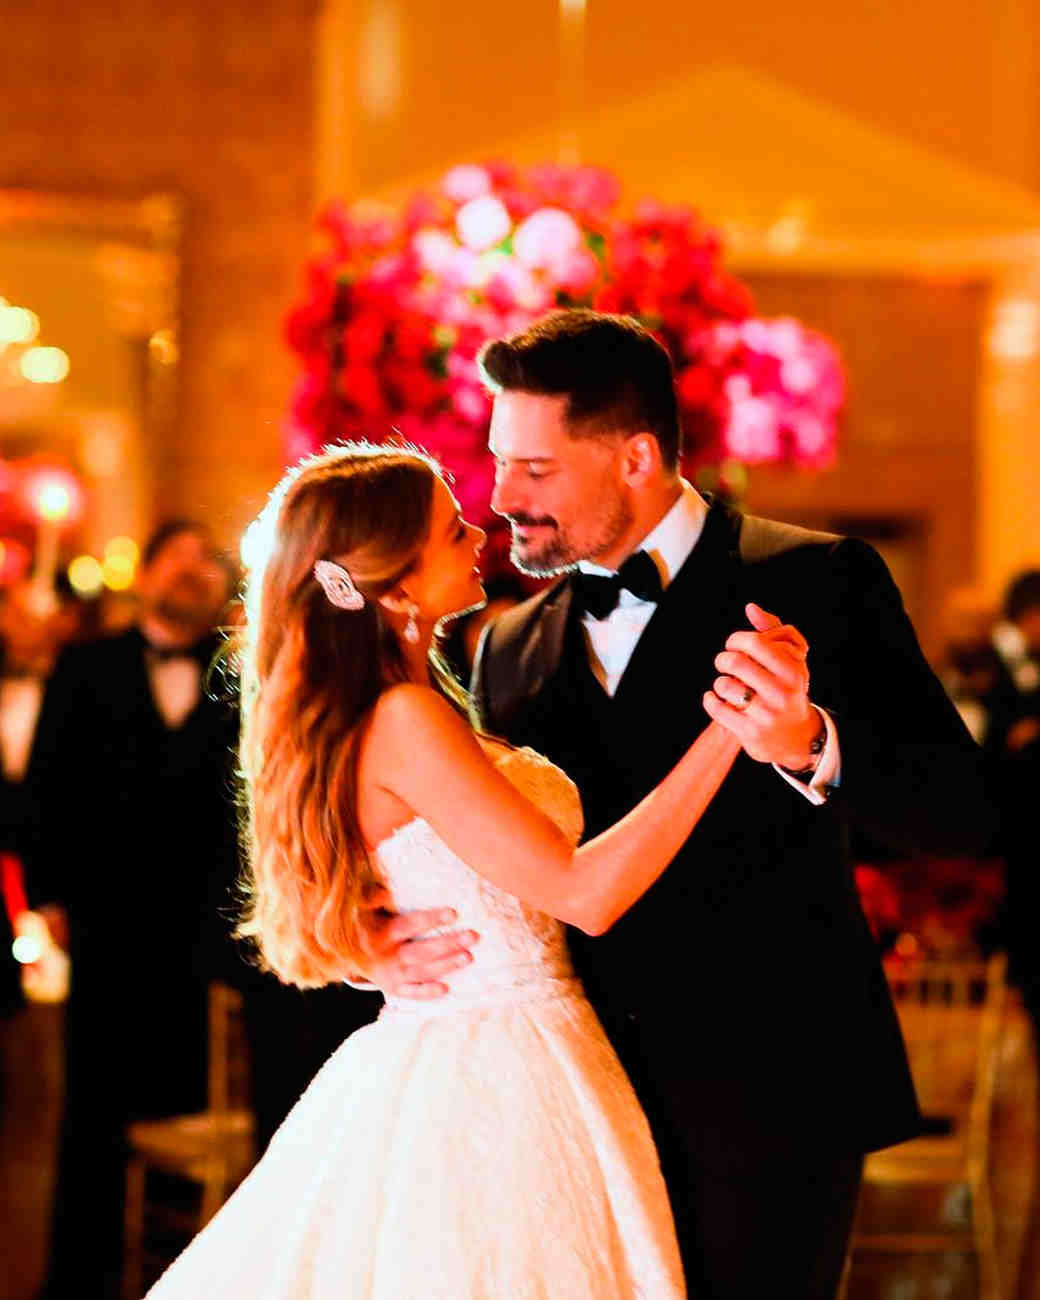 celebrity-wedding-moments-sofia-vergara-joe-manganiello-first-dance-1215.jpg